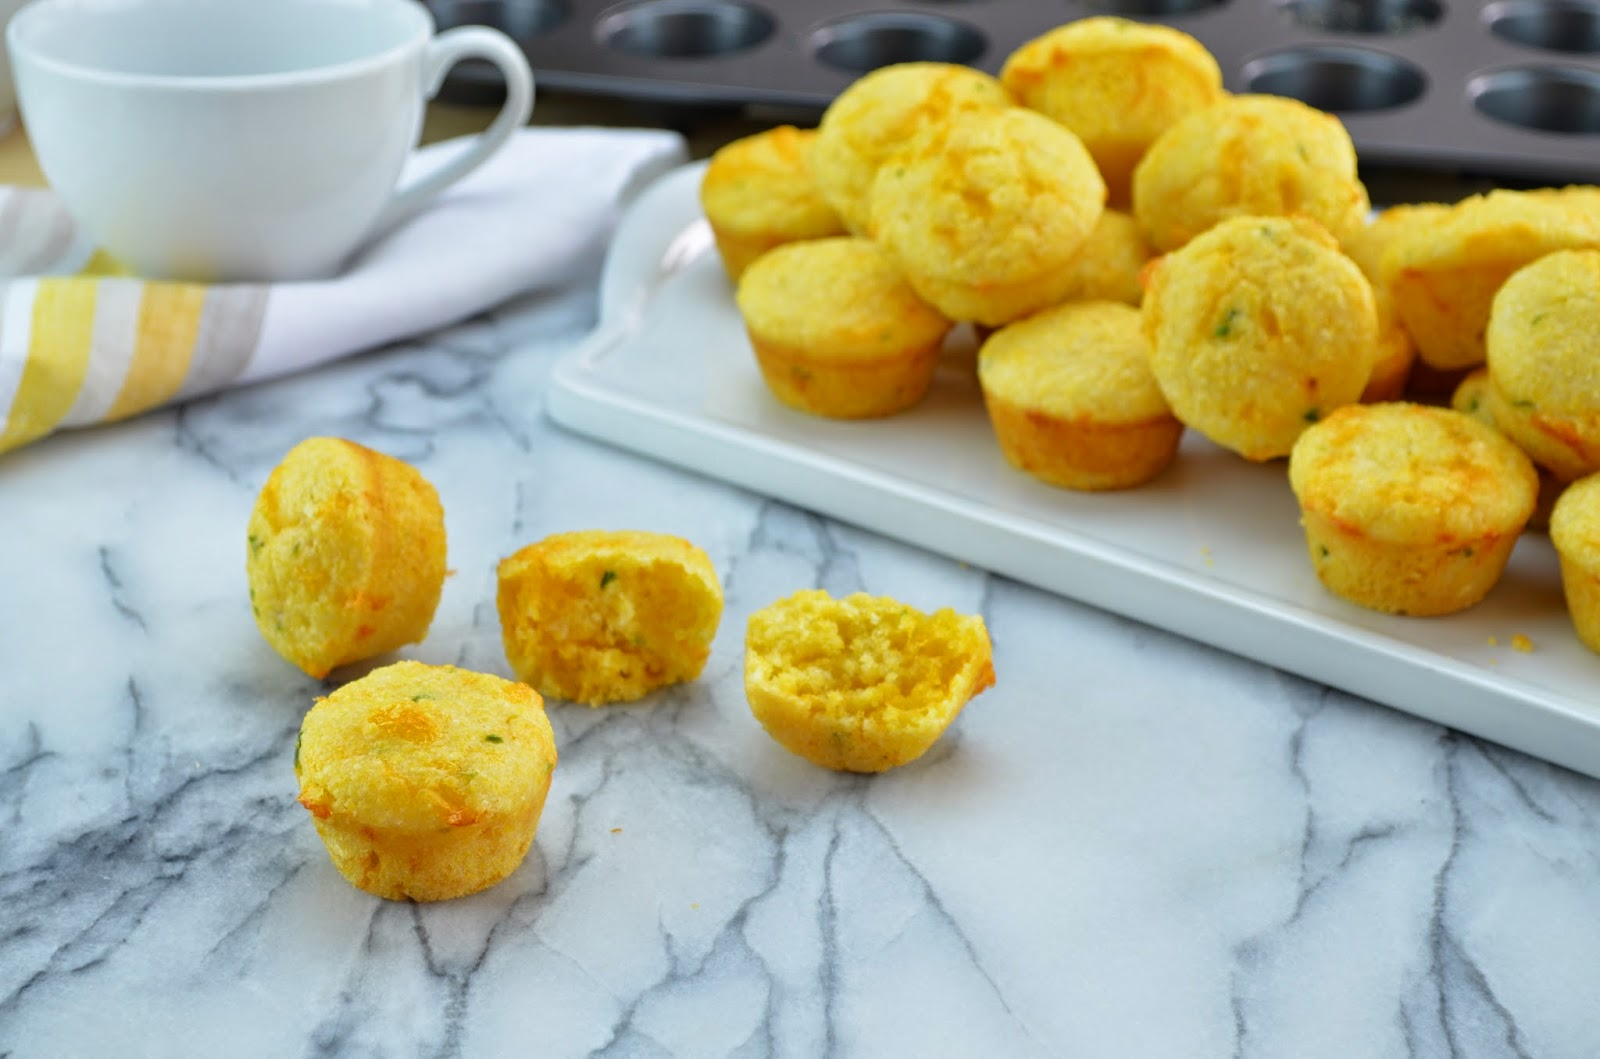 ... Cornbread Muffins with Jalapeno and Cheddar Cheese - Smell of Rosemary